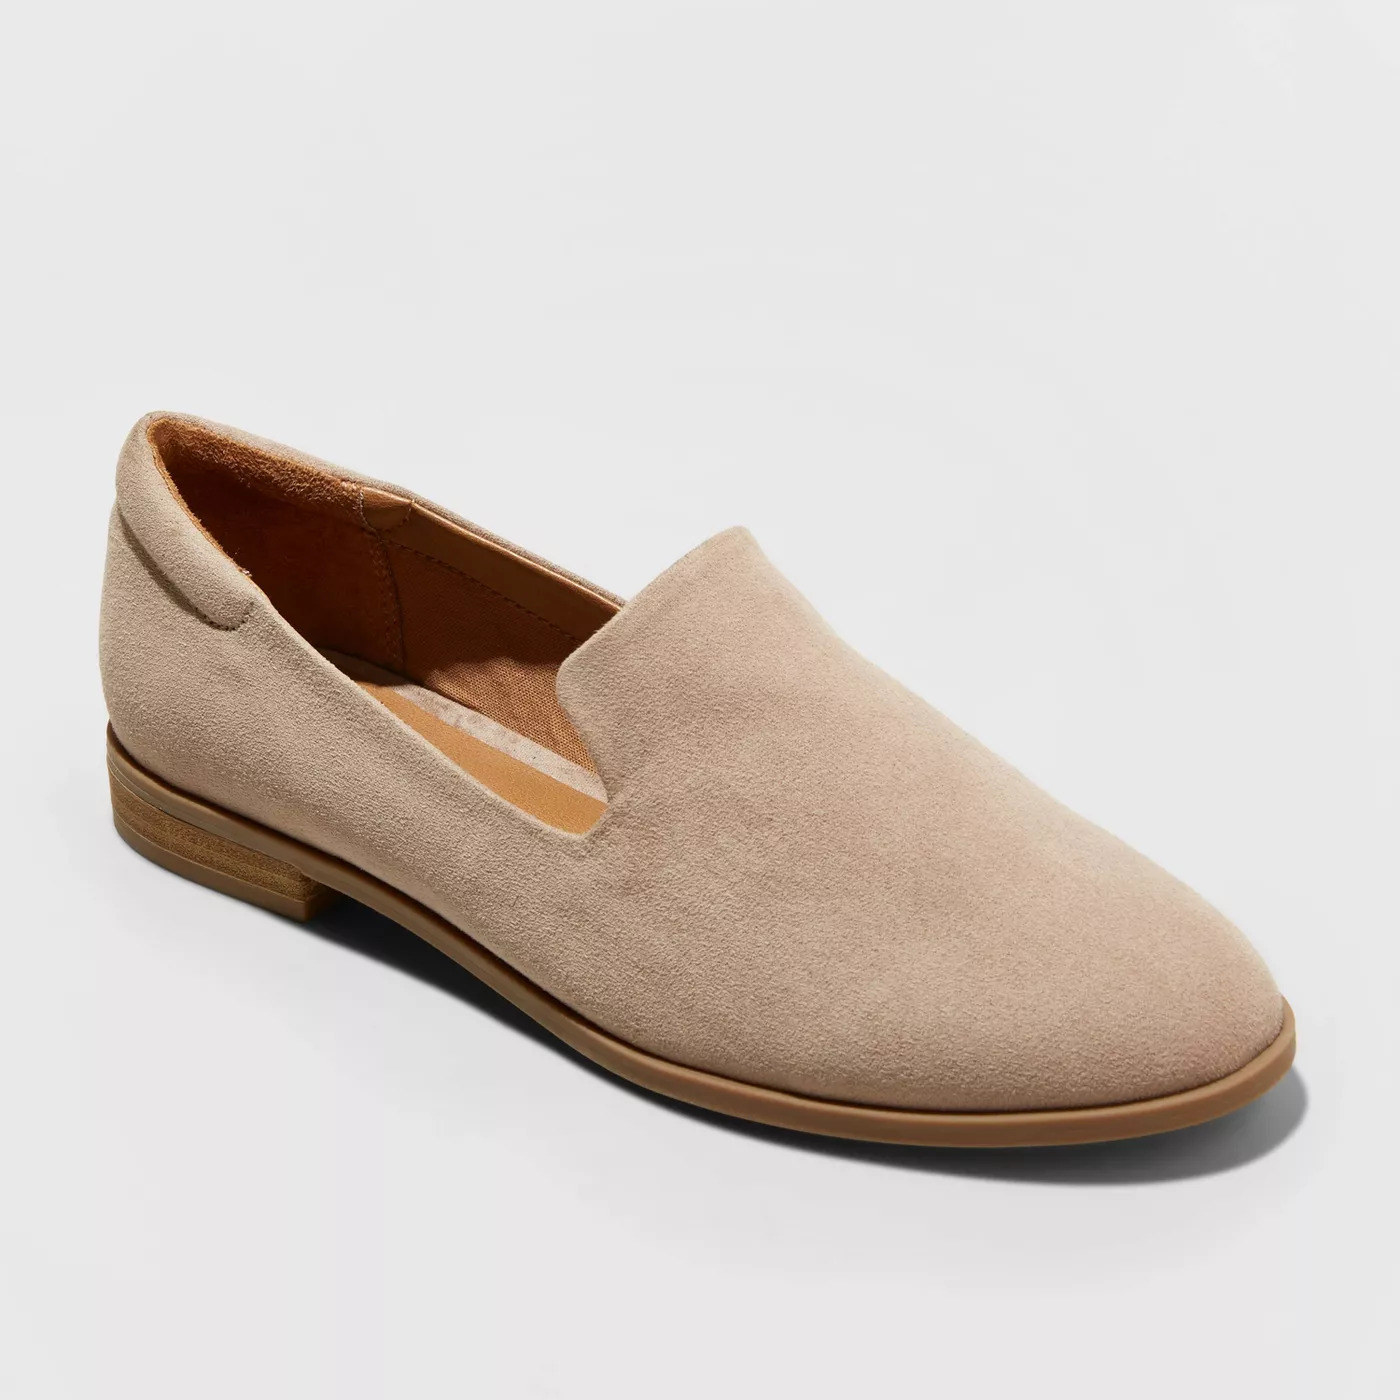 A beige suede loafer with a light brown sole